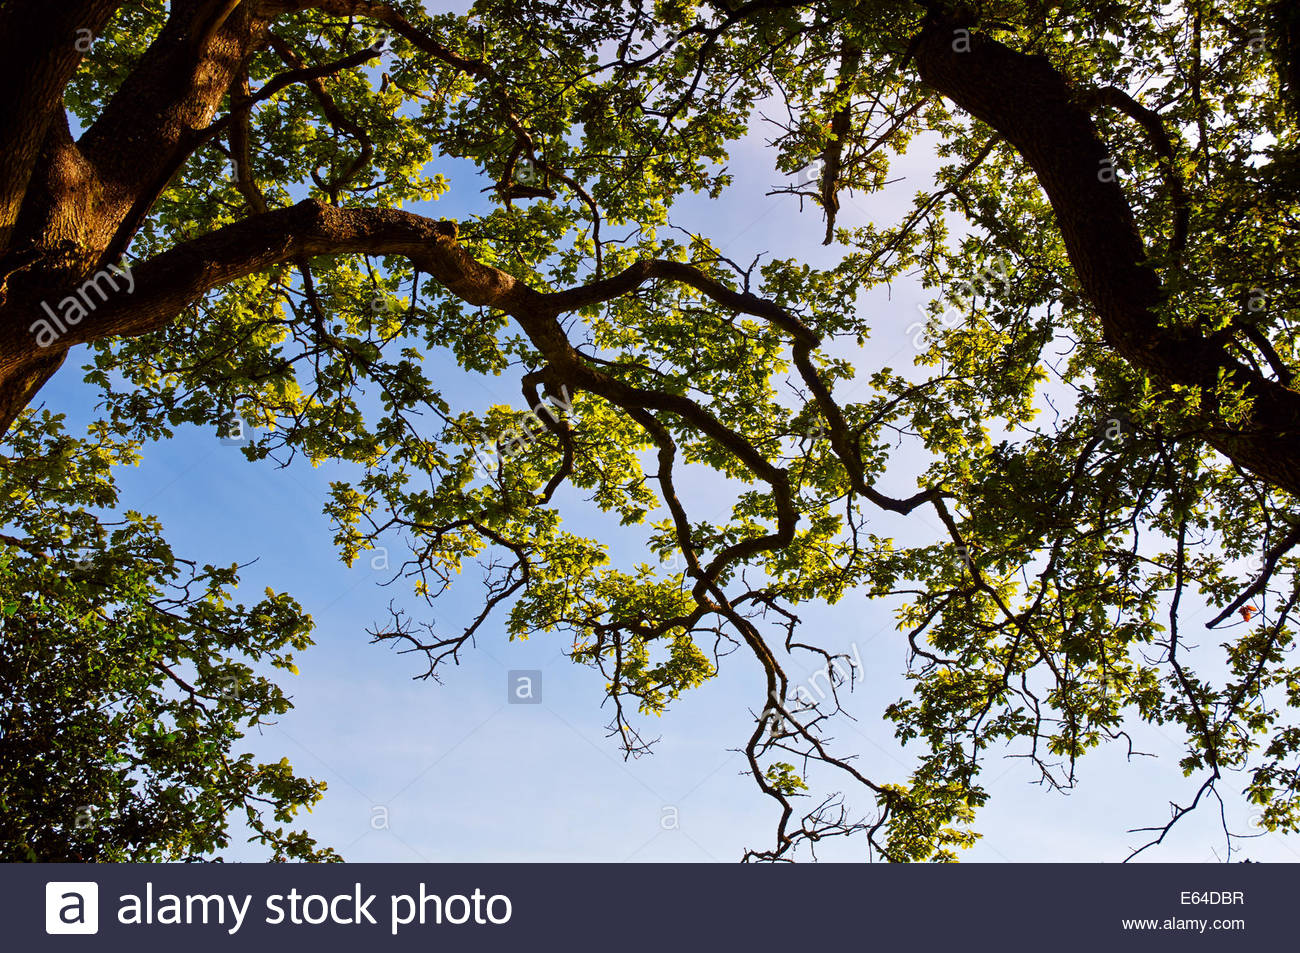 looking up to the canopy of oak tree quercus robur fagaceae tree against a blue summer sky - Stock Image